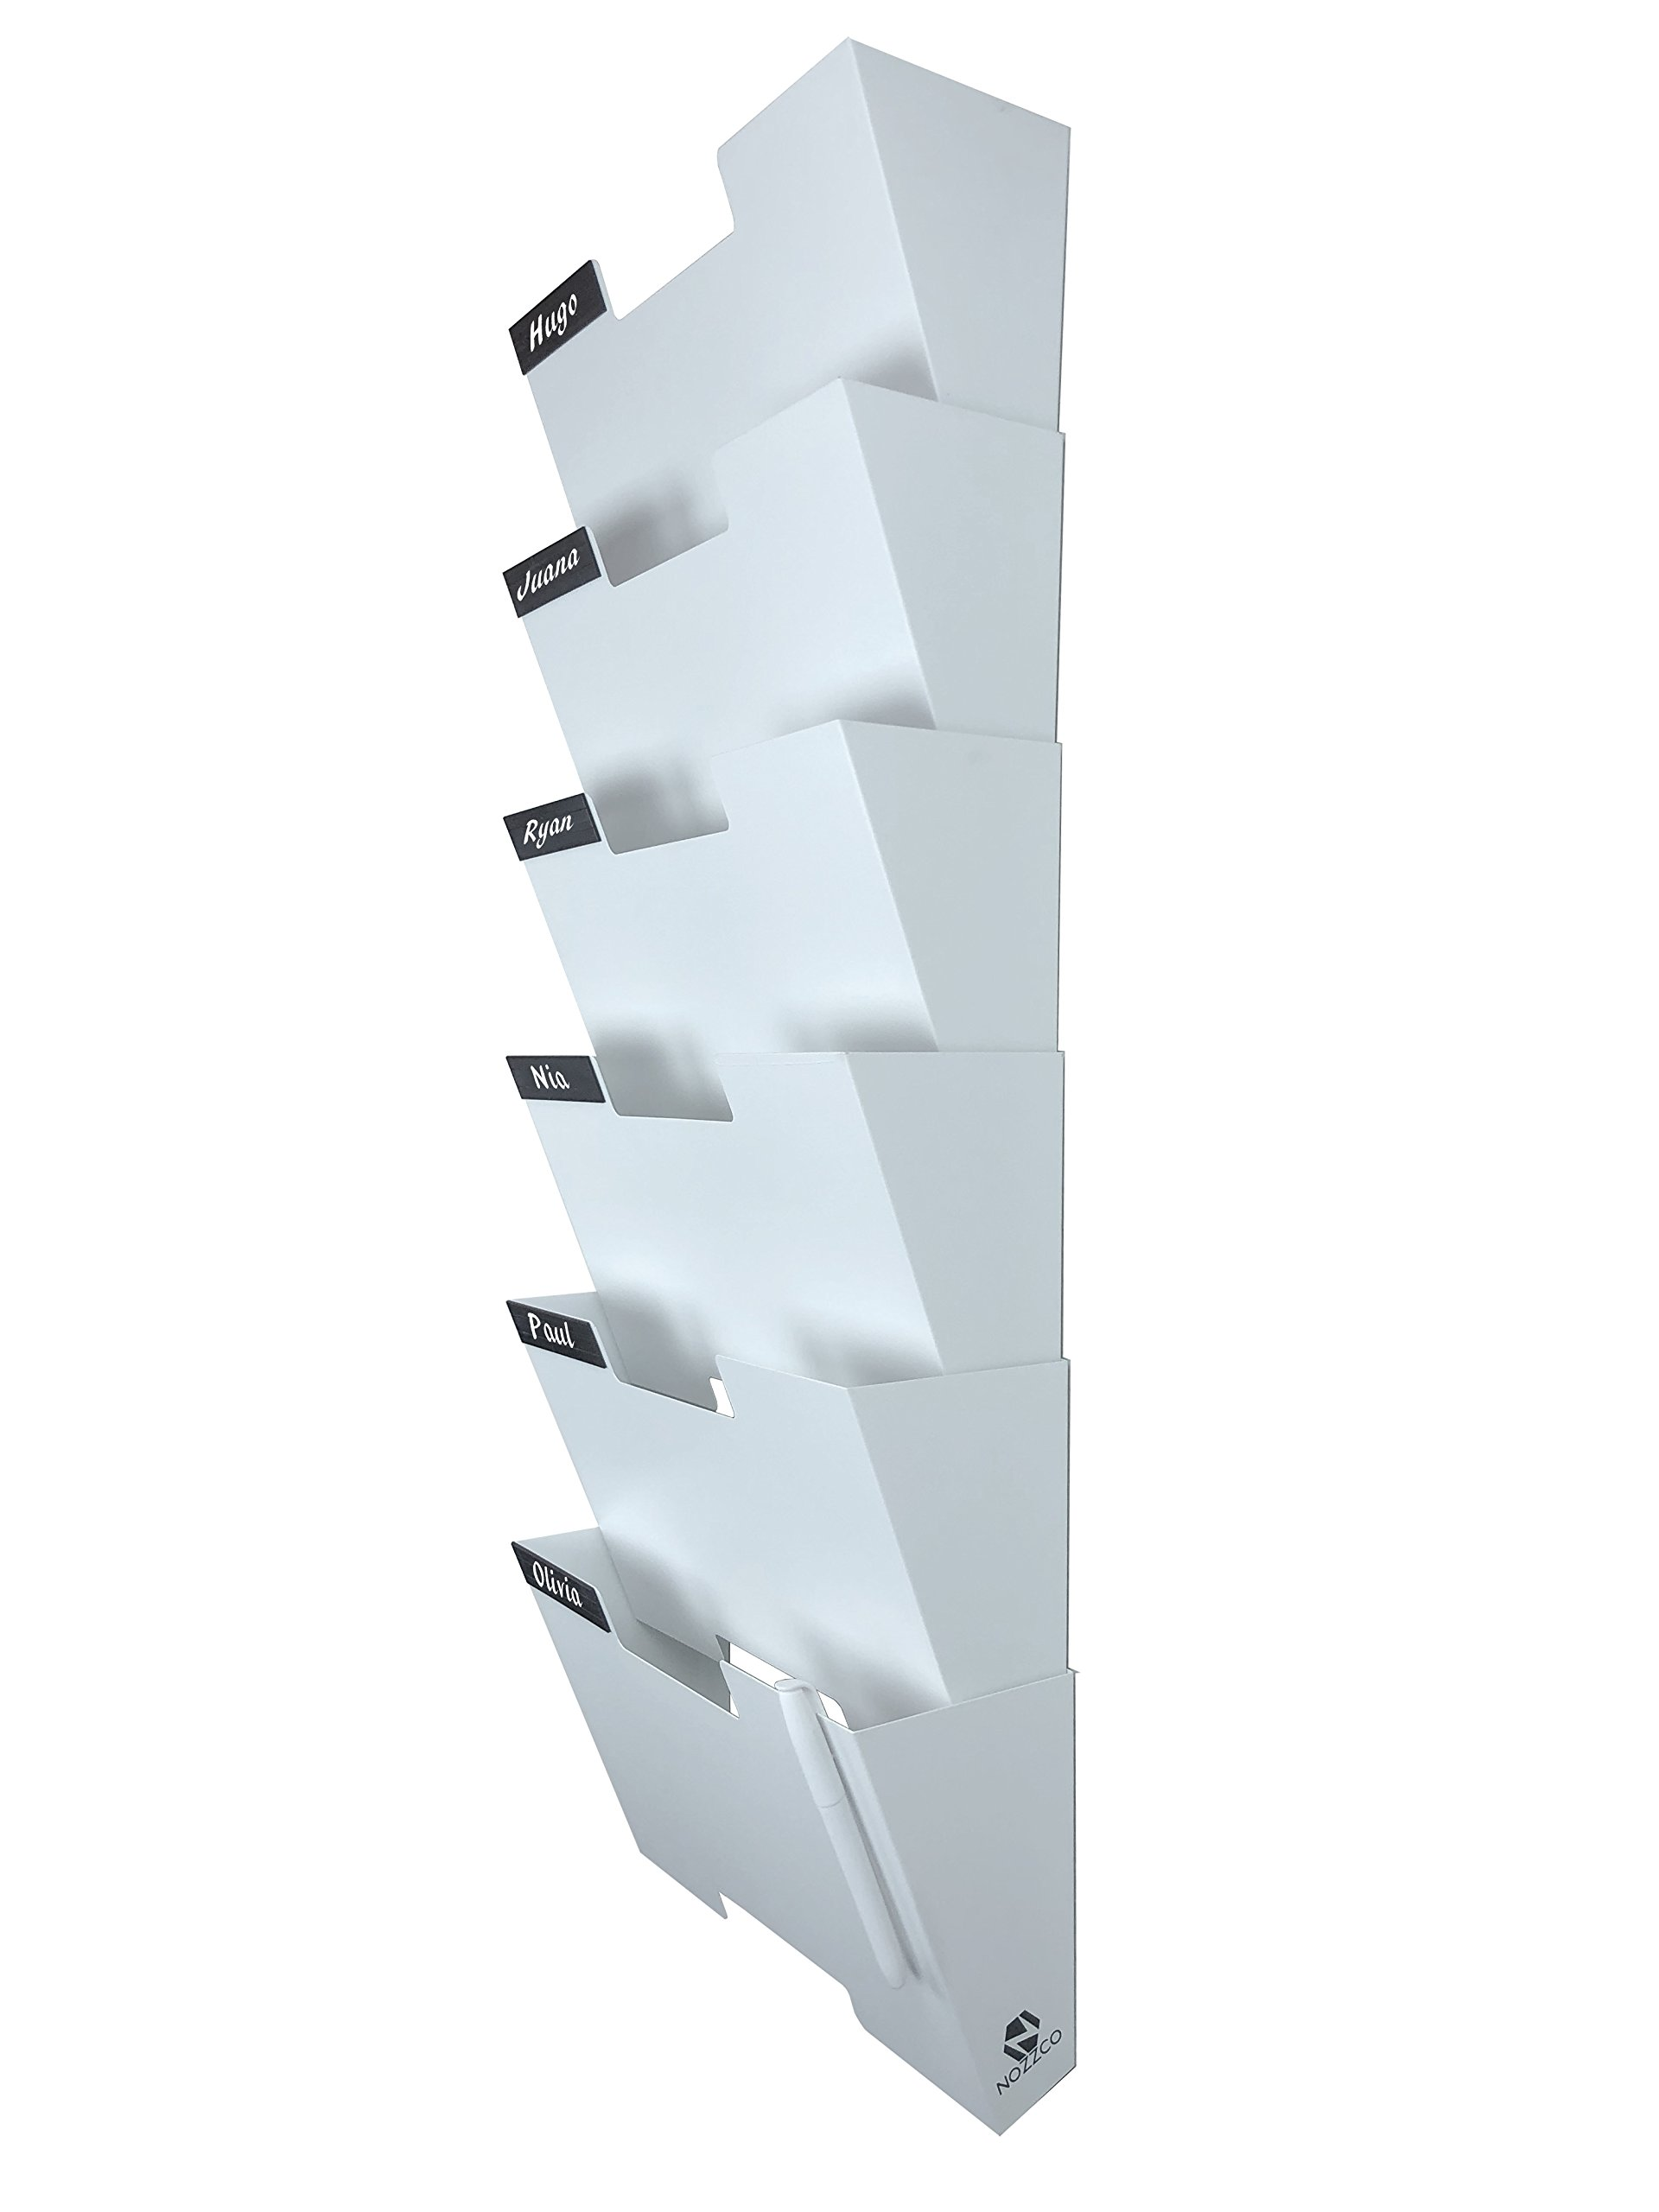 White Wall Mount Hanging File Holder Organizer 6 Pack | Durable Steel Rack, Solid, Sturdy & Wide | for Letters, Files, Magazines & More | Organize The Desktop, Declutter Your Office - Nozzco